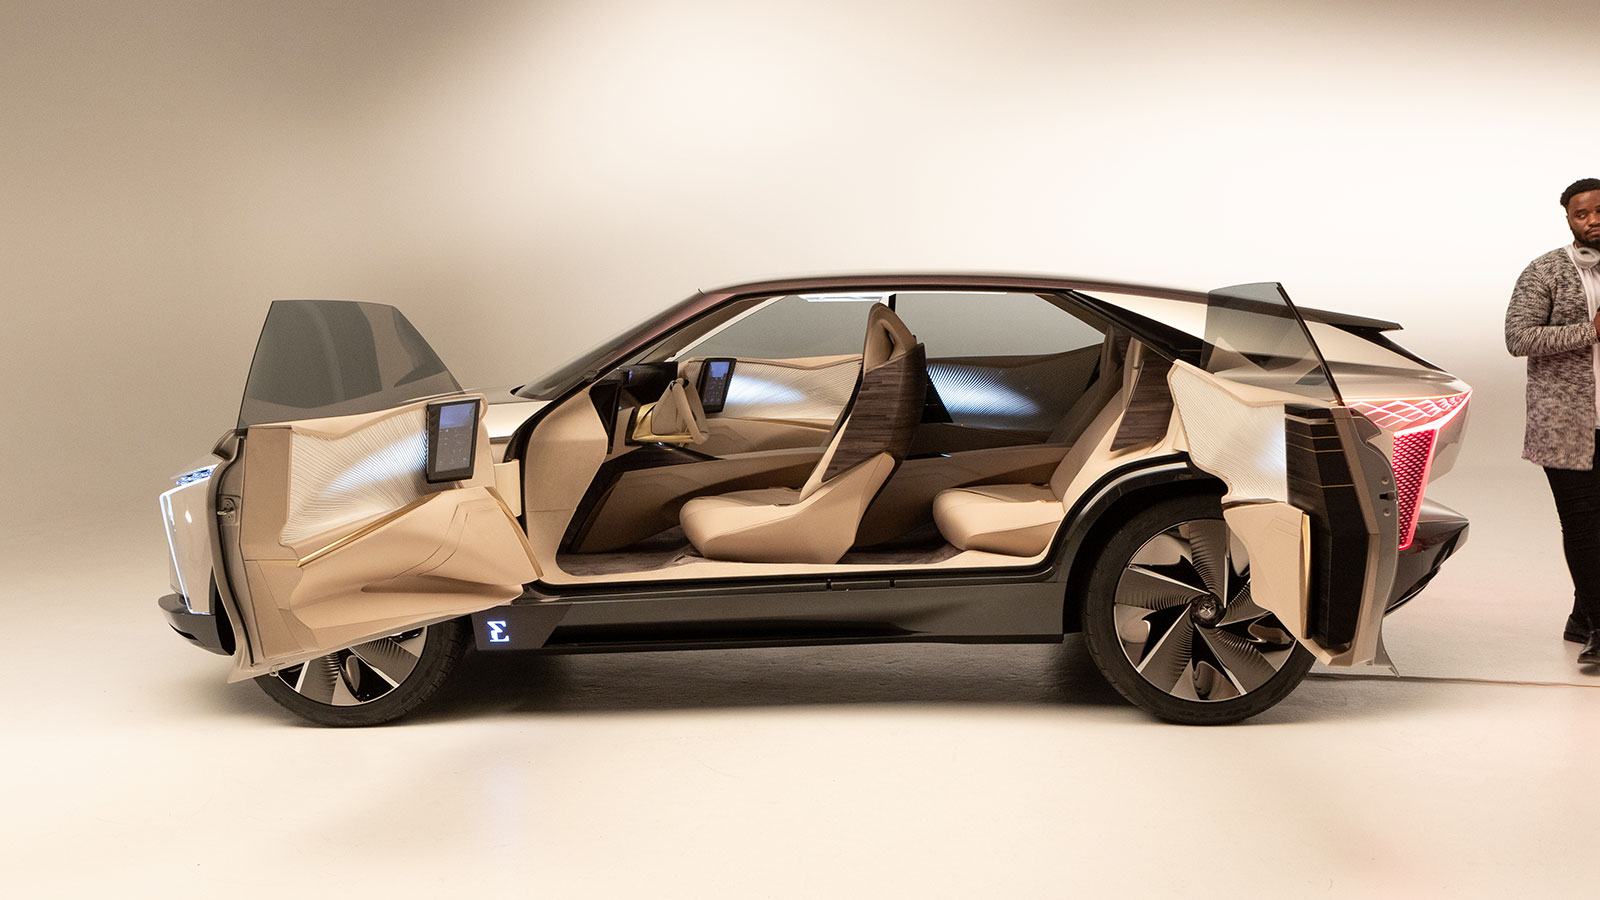 Gesture control by Ultraleap inside luxGroupe PSA DS Automobile concept car with Ultraleap